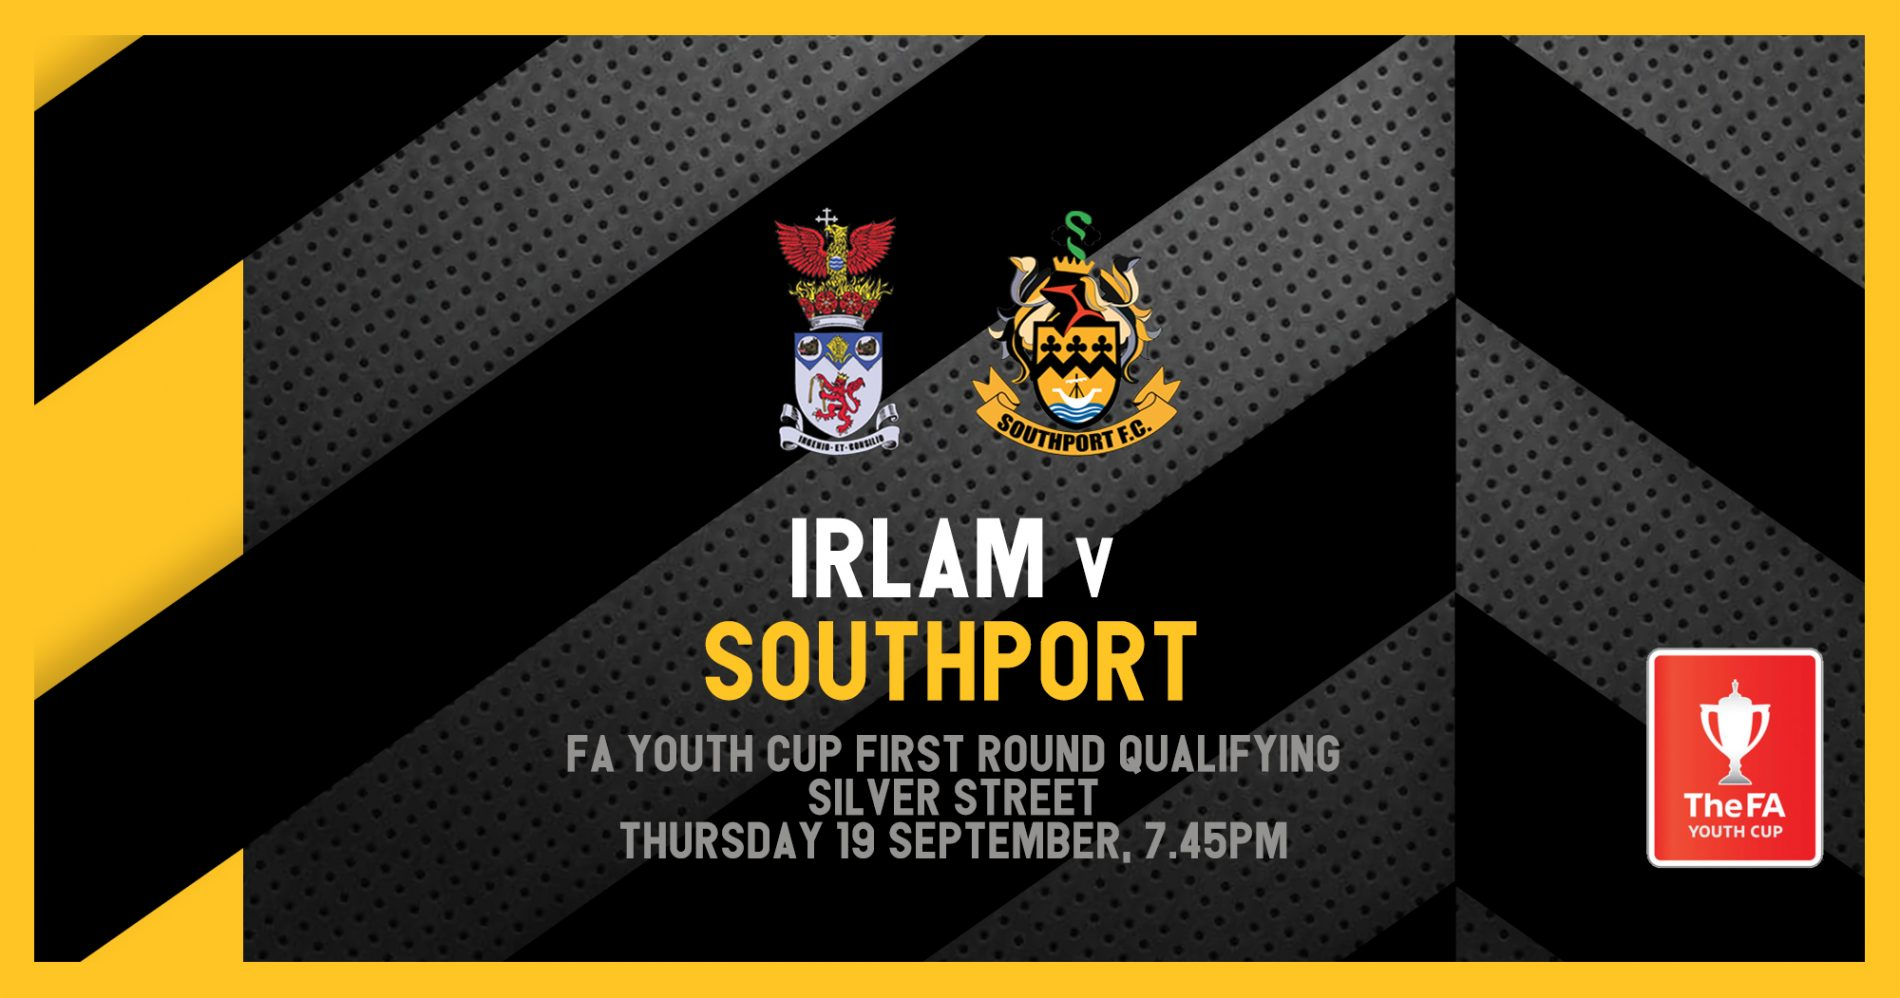 FIXTURE   FA Youth Cup vs Irlam